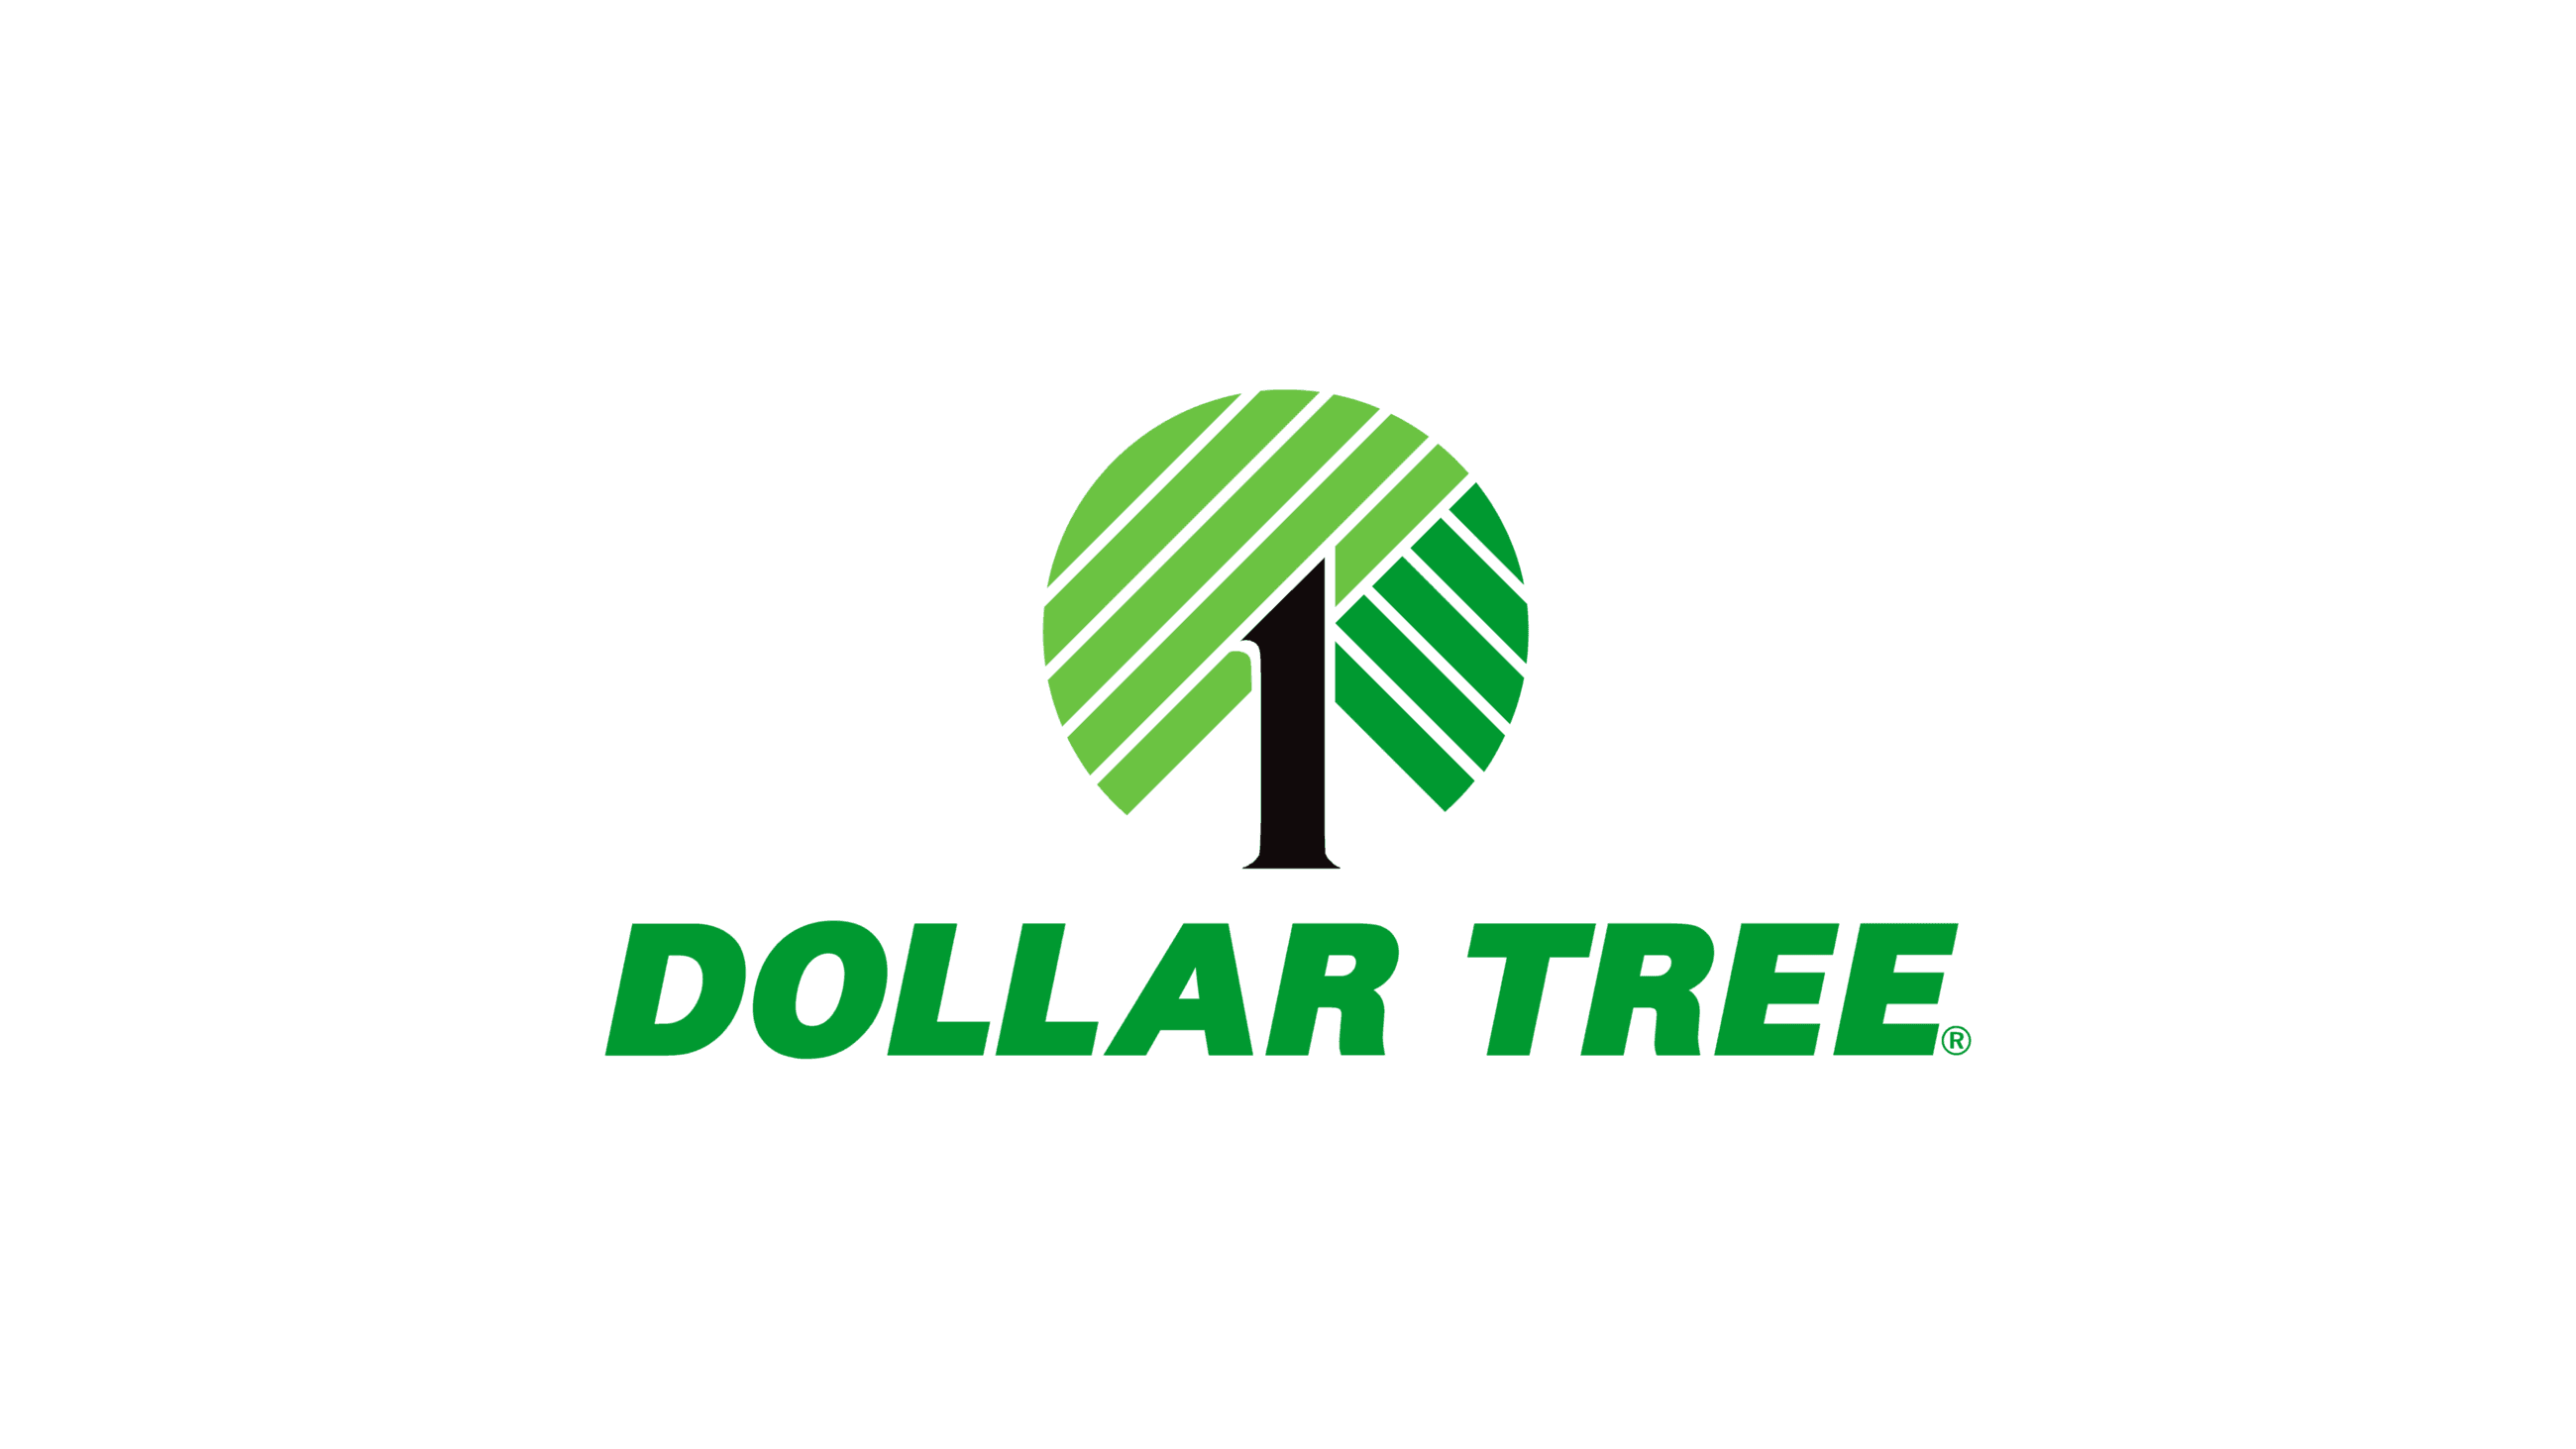 Dollar Tree Company Logo